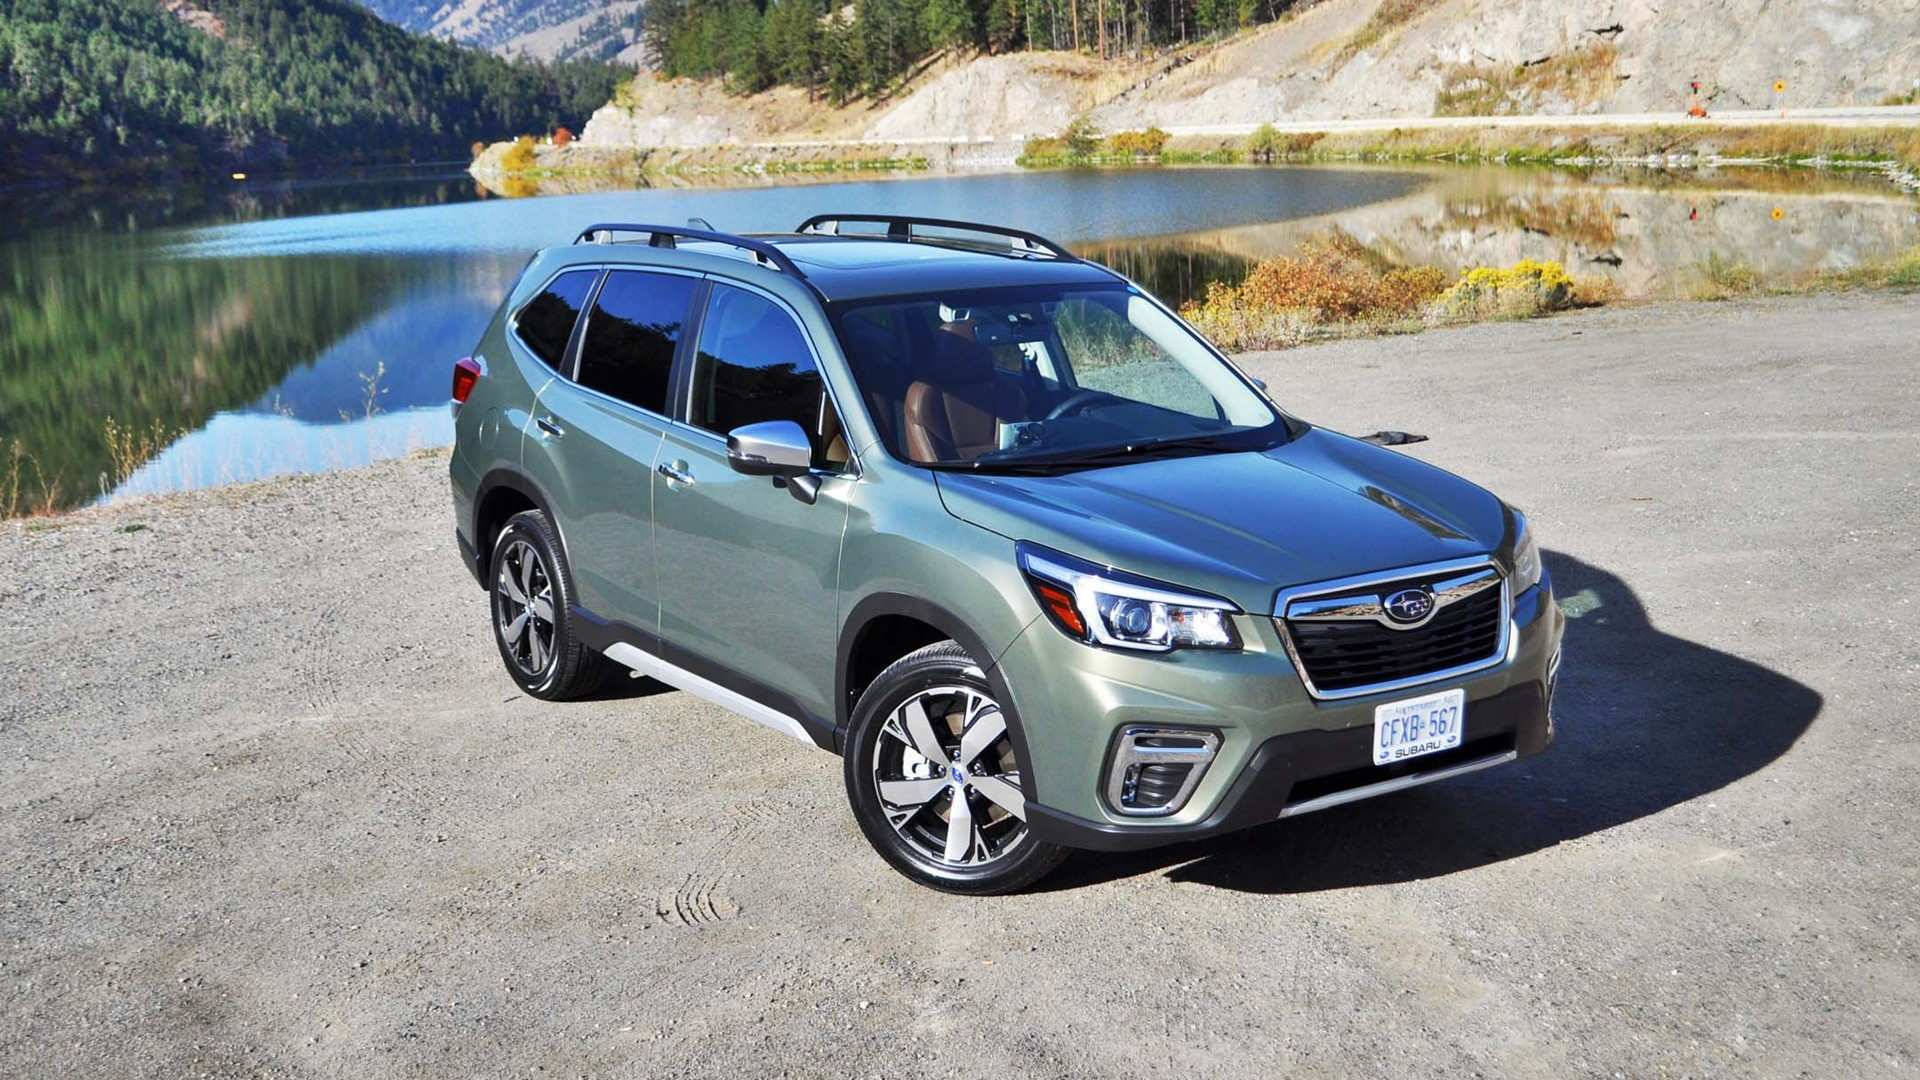 58 Gallery of 2019 Subaru Forester Sport 2 Spy Shoot with 2019 Subaru Forester Sport 2